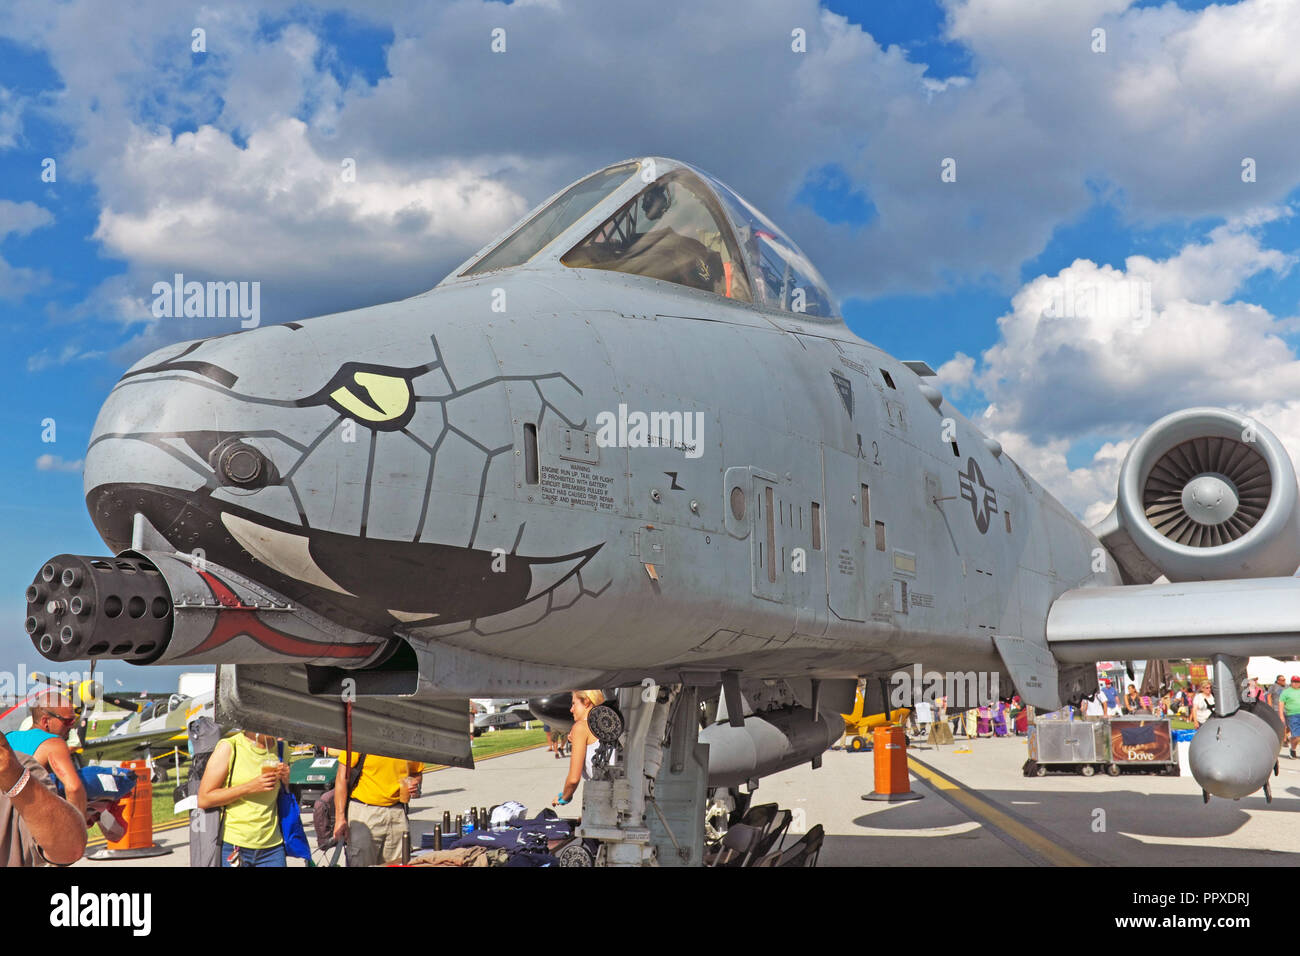 US Airforce A-10 warthog warplane with serpentine nose art on display at the 2018 Cleveland National Air Show in Cleveland, Ohio, USA. - Stock Image